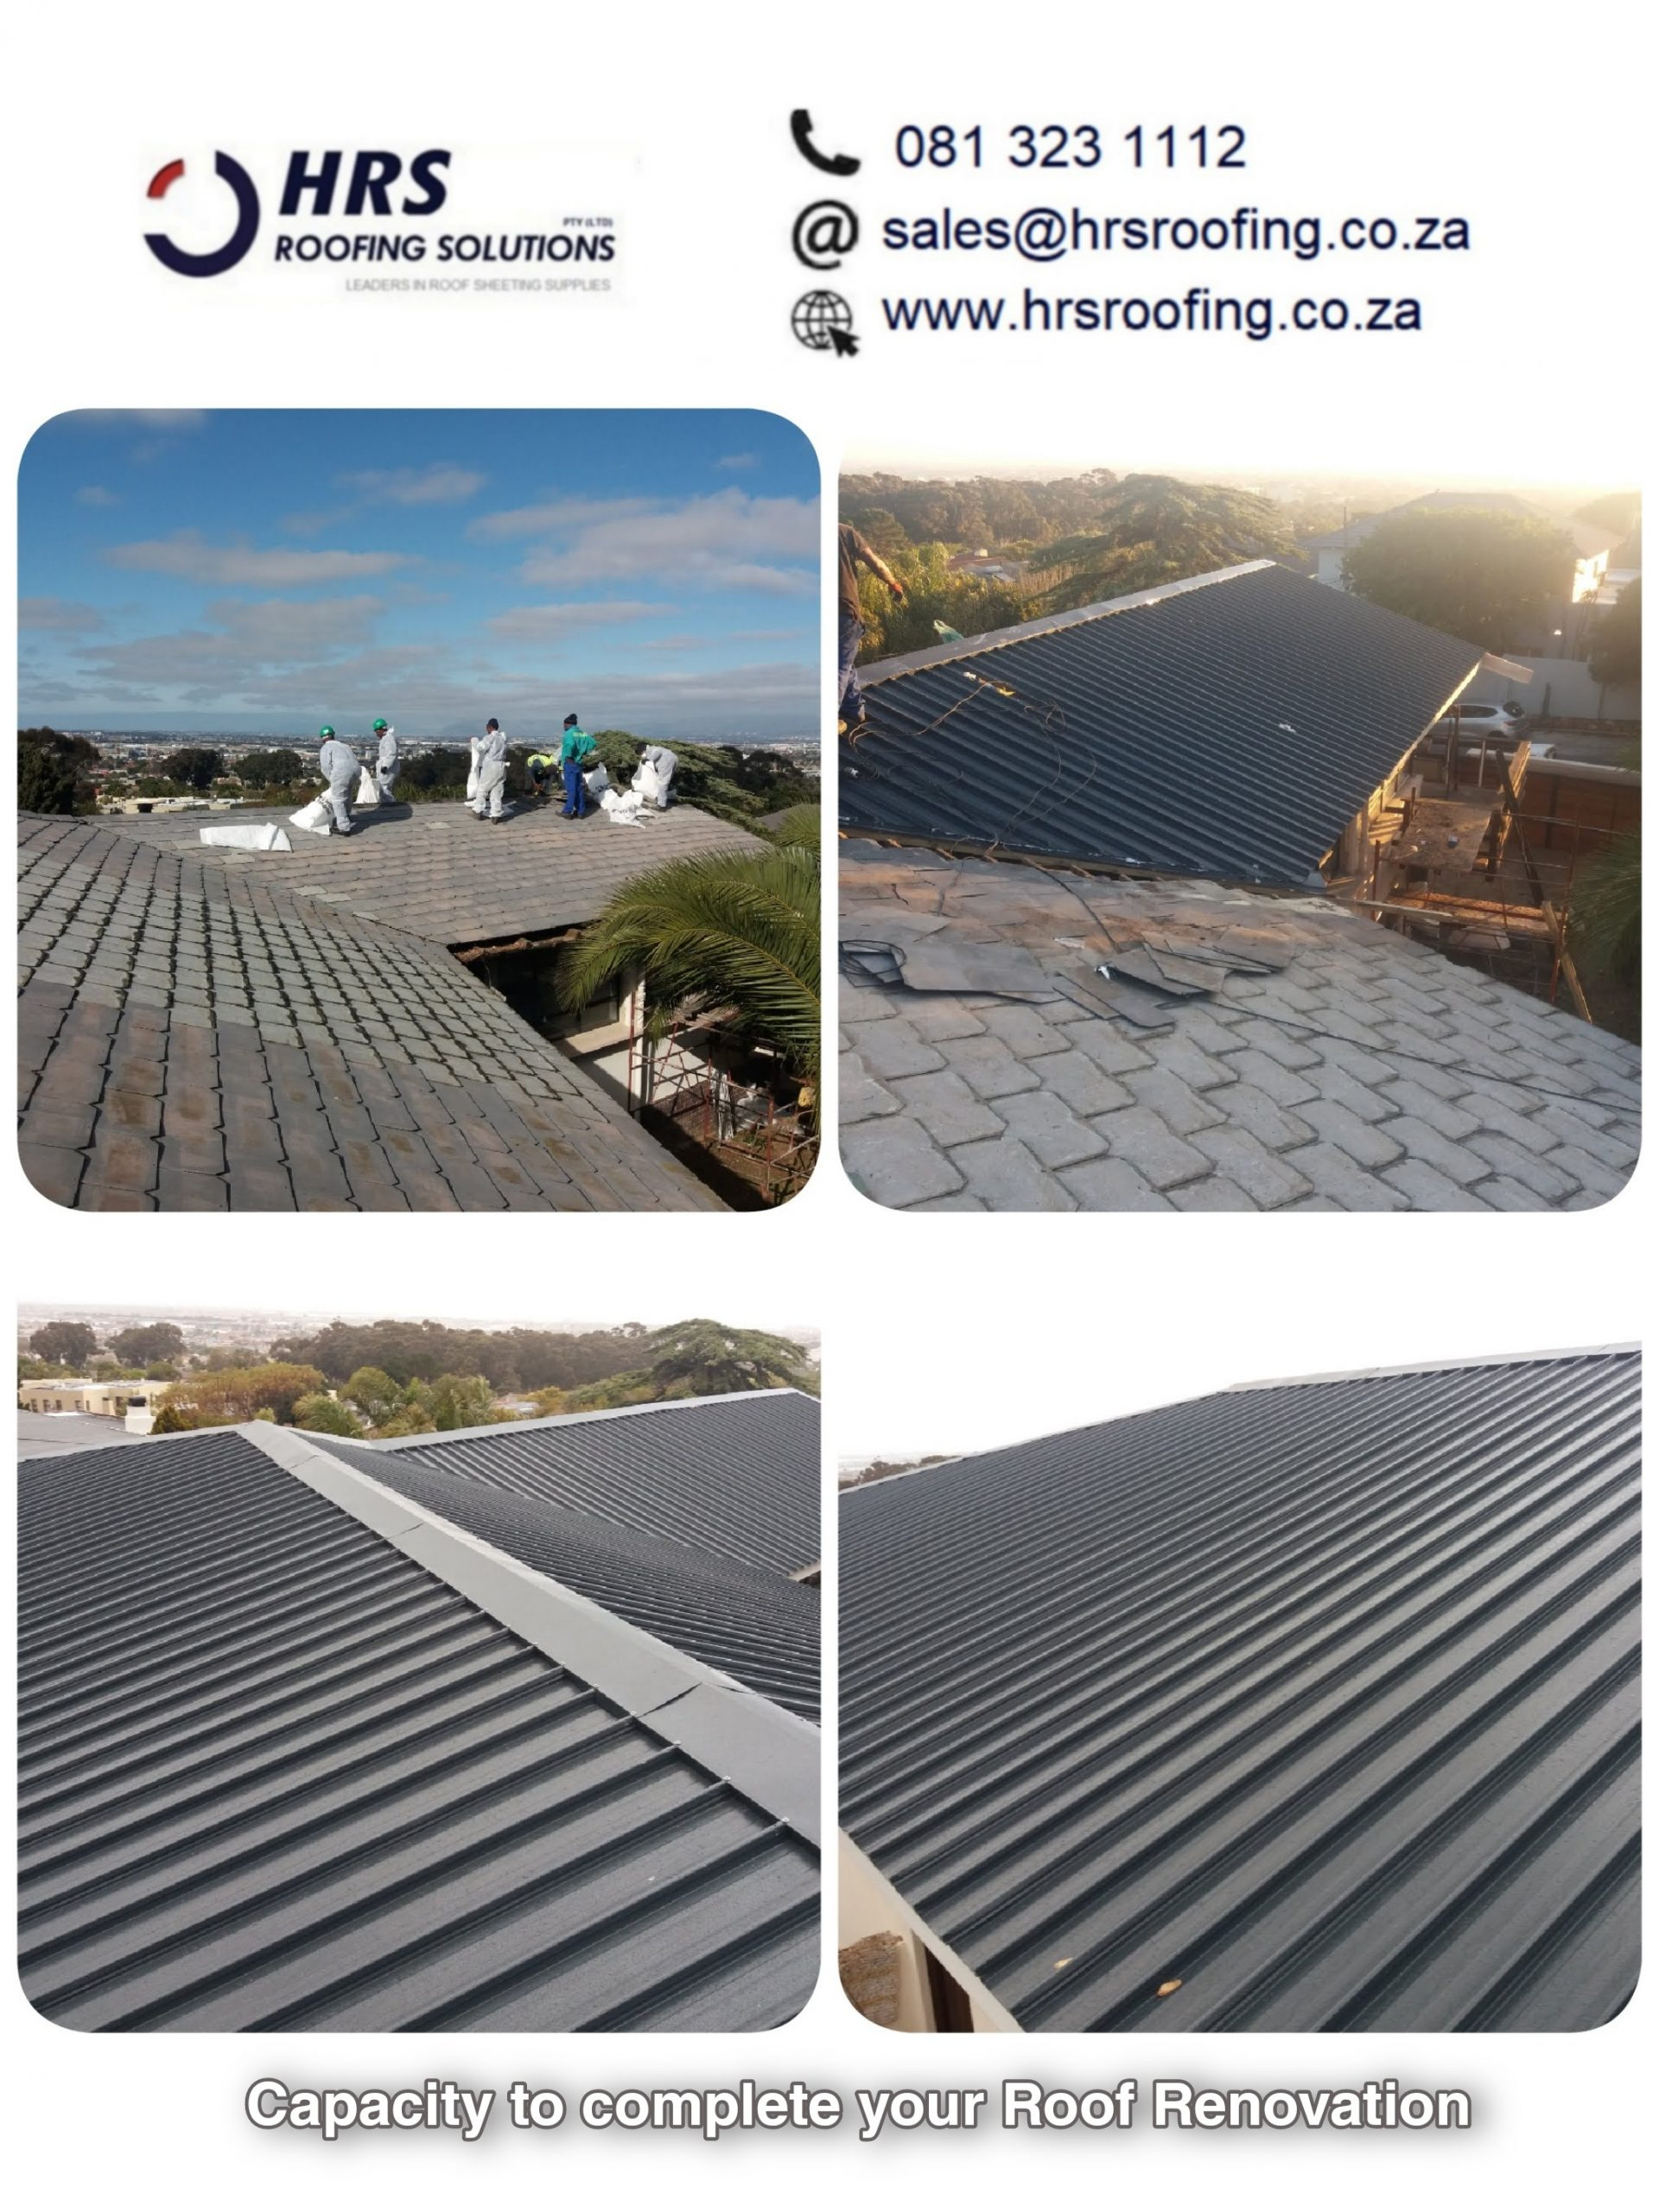 Asbestos roof removal and safe disposal cape town paarl stellenbosch scaled - Roofing Gallery